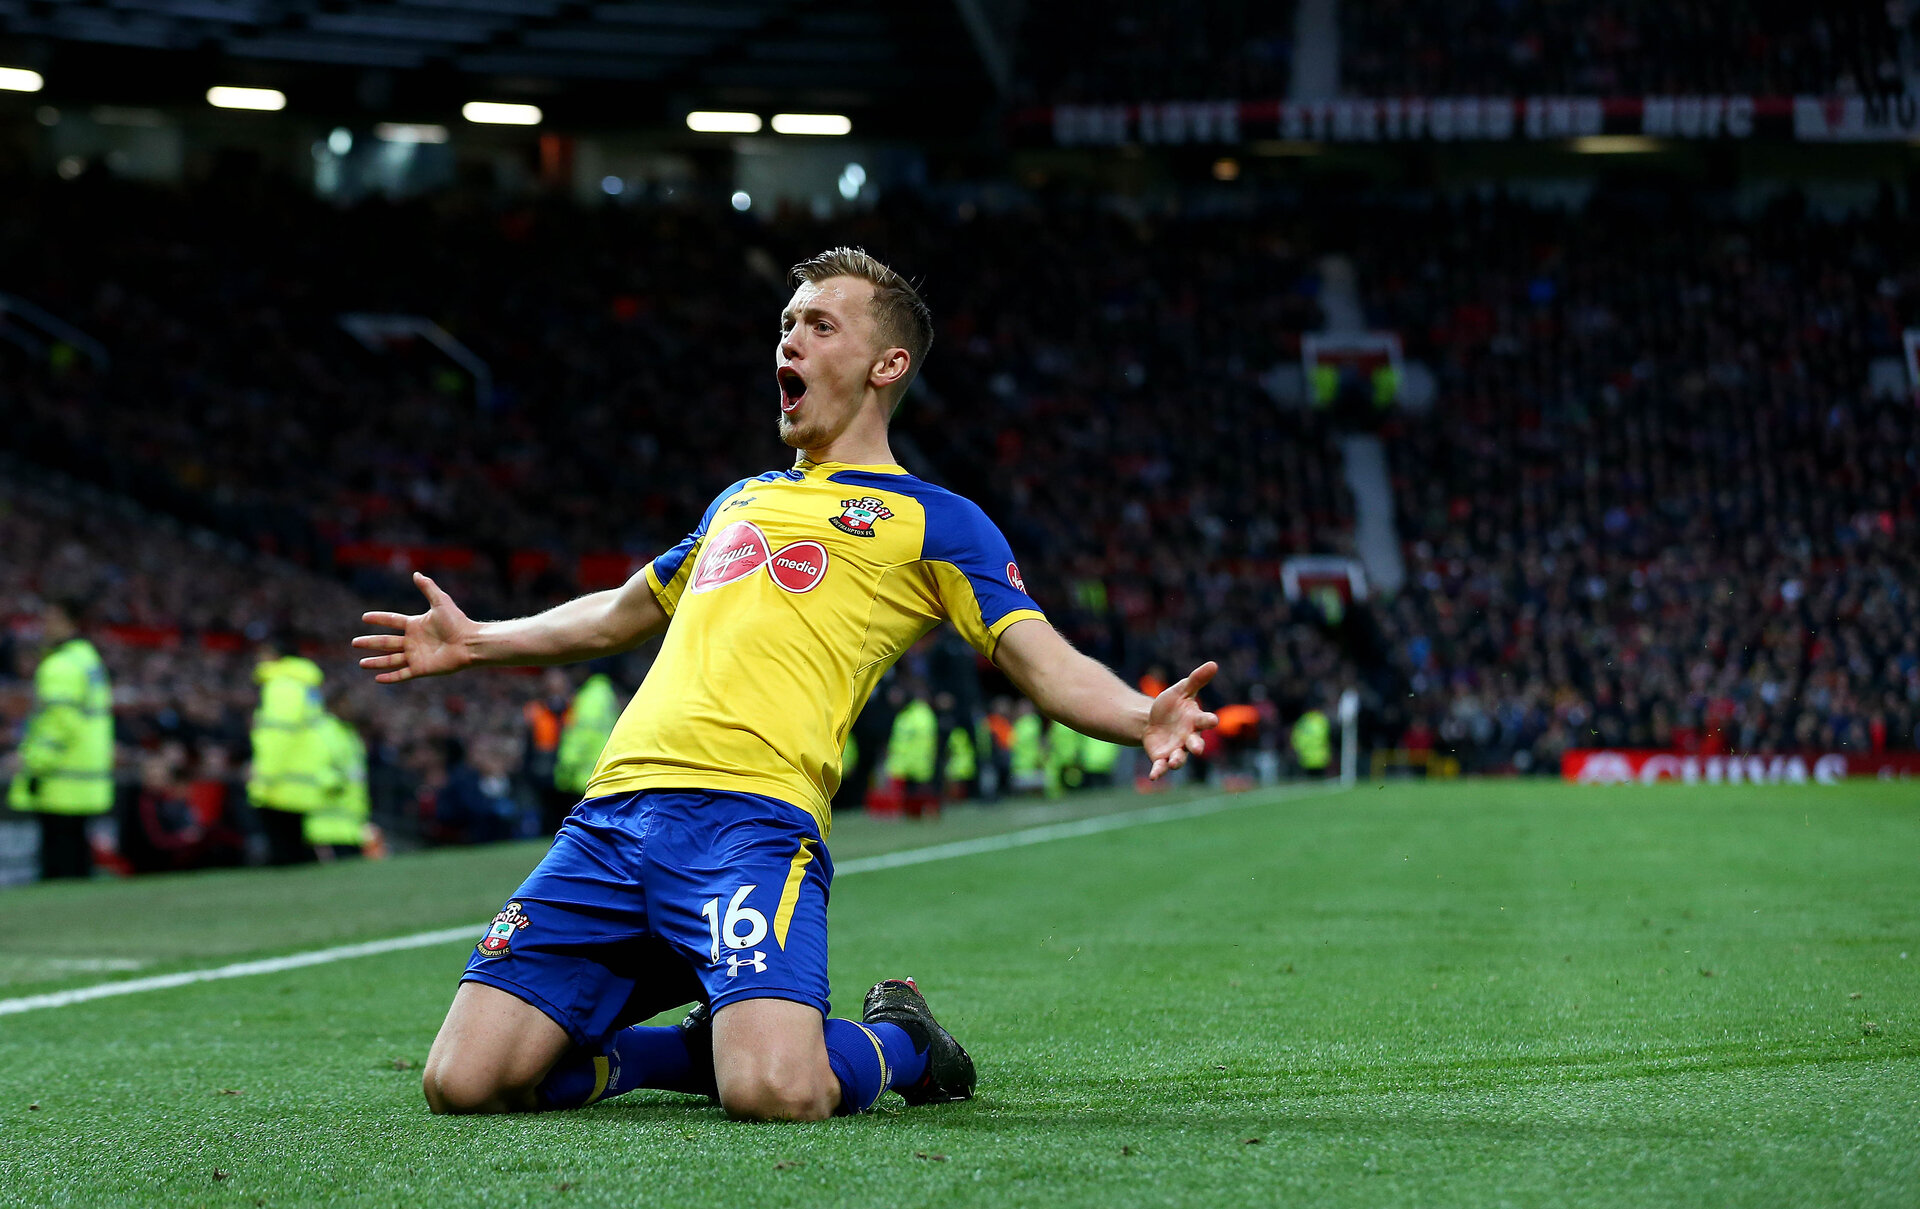 MANCHESTER, ENGLAND - MARCH 02: James Ward-Prowse of Southampton celebrates after making it 2-2 during the Premier League match between Manchester United and Southampton FC at Old Trafford on March 02, 2019 in Manchester, United Kingdom. (Photo by Matt Watson/Southampton FC via Getty Images)